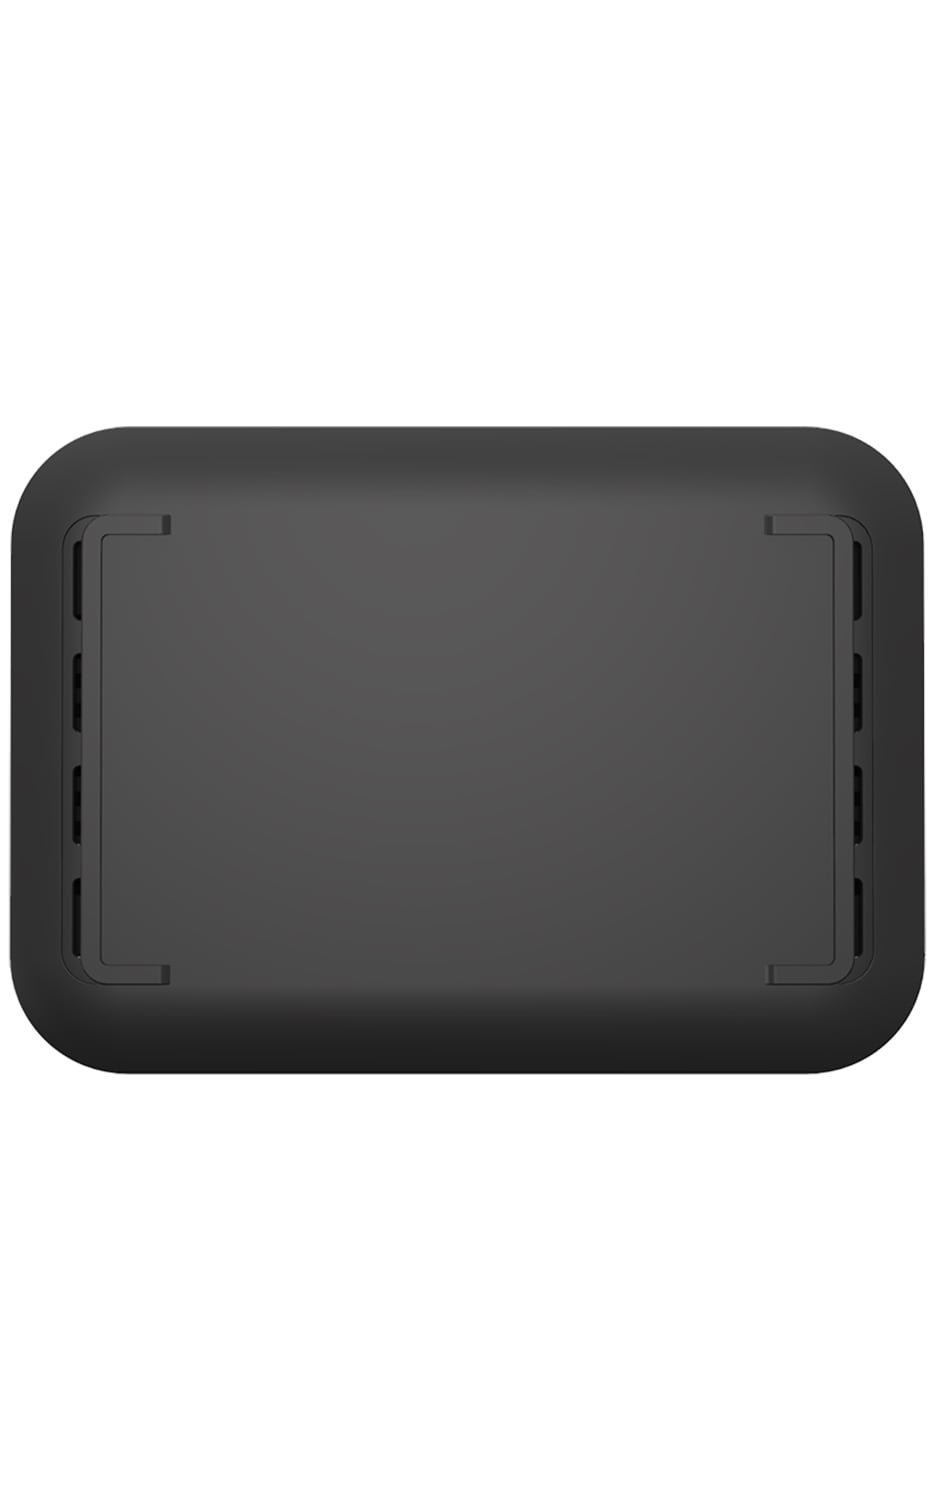 Rear View T9 Mobile Hotspot Black